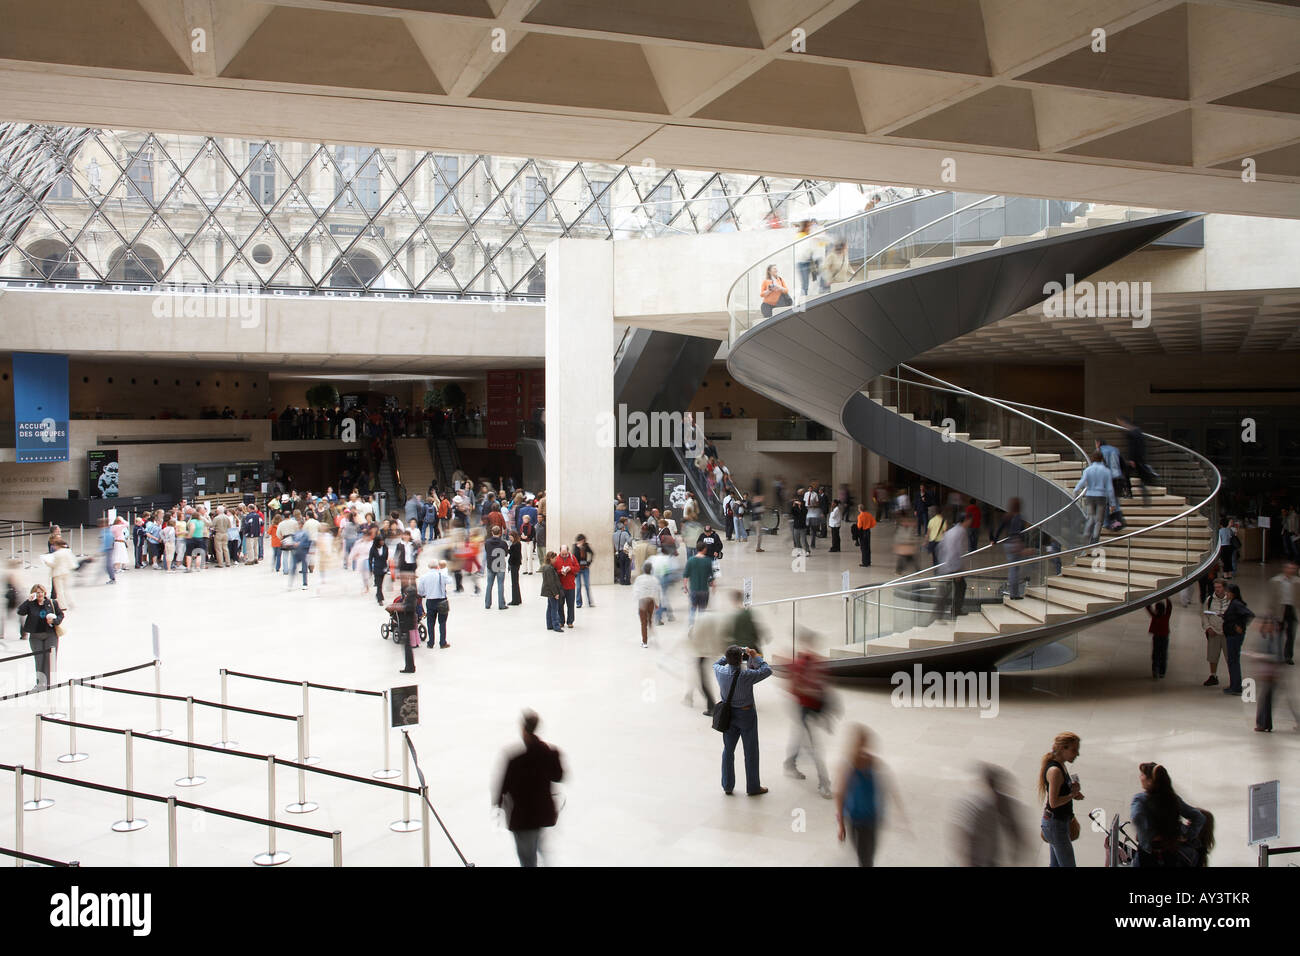 The Louvre - Stock Image